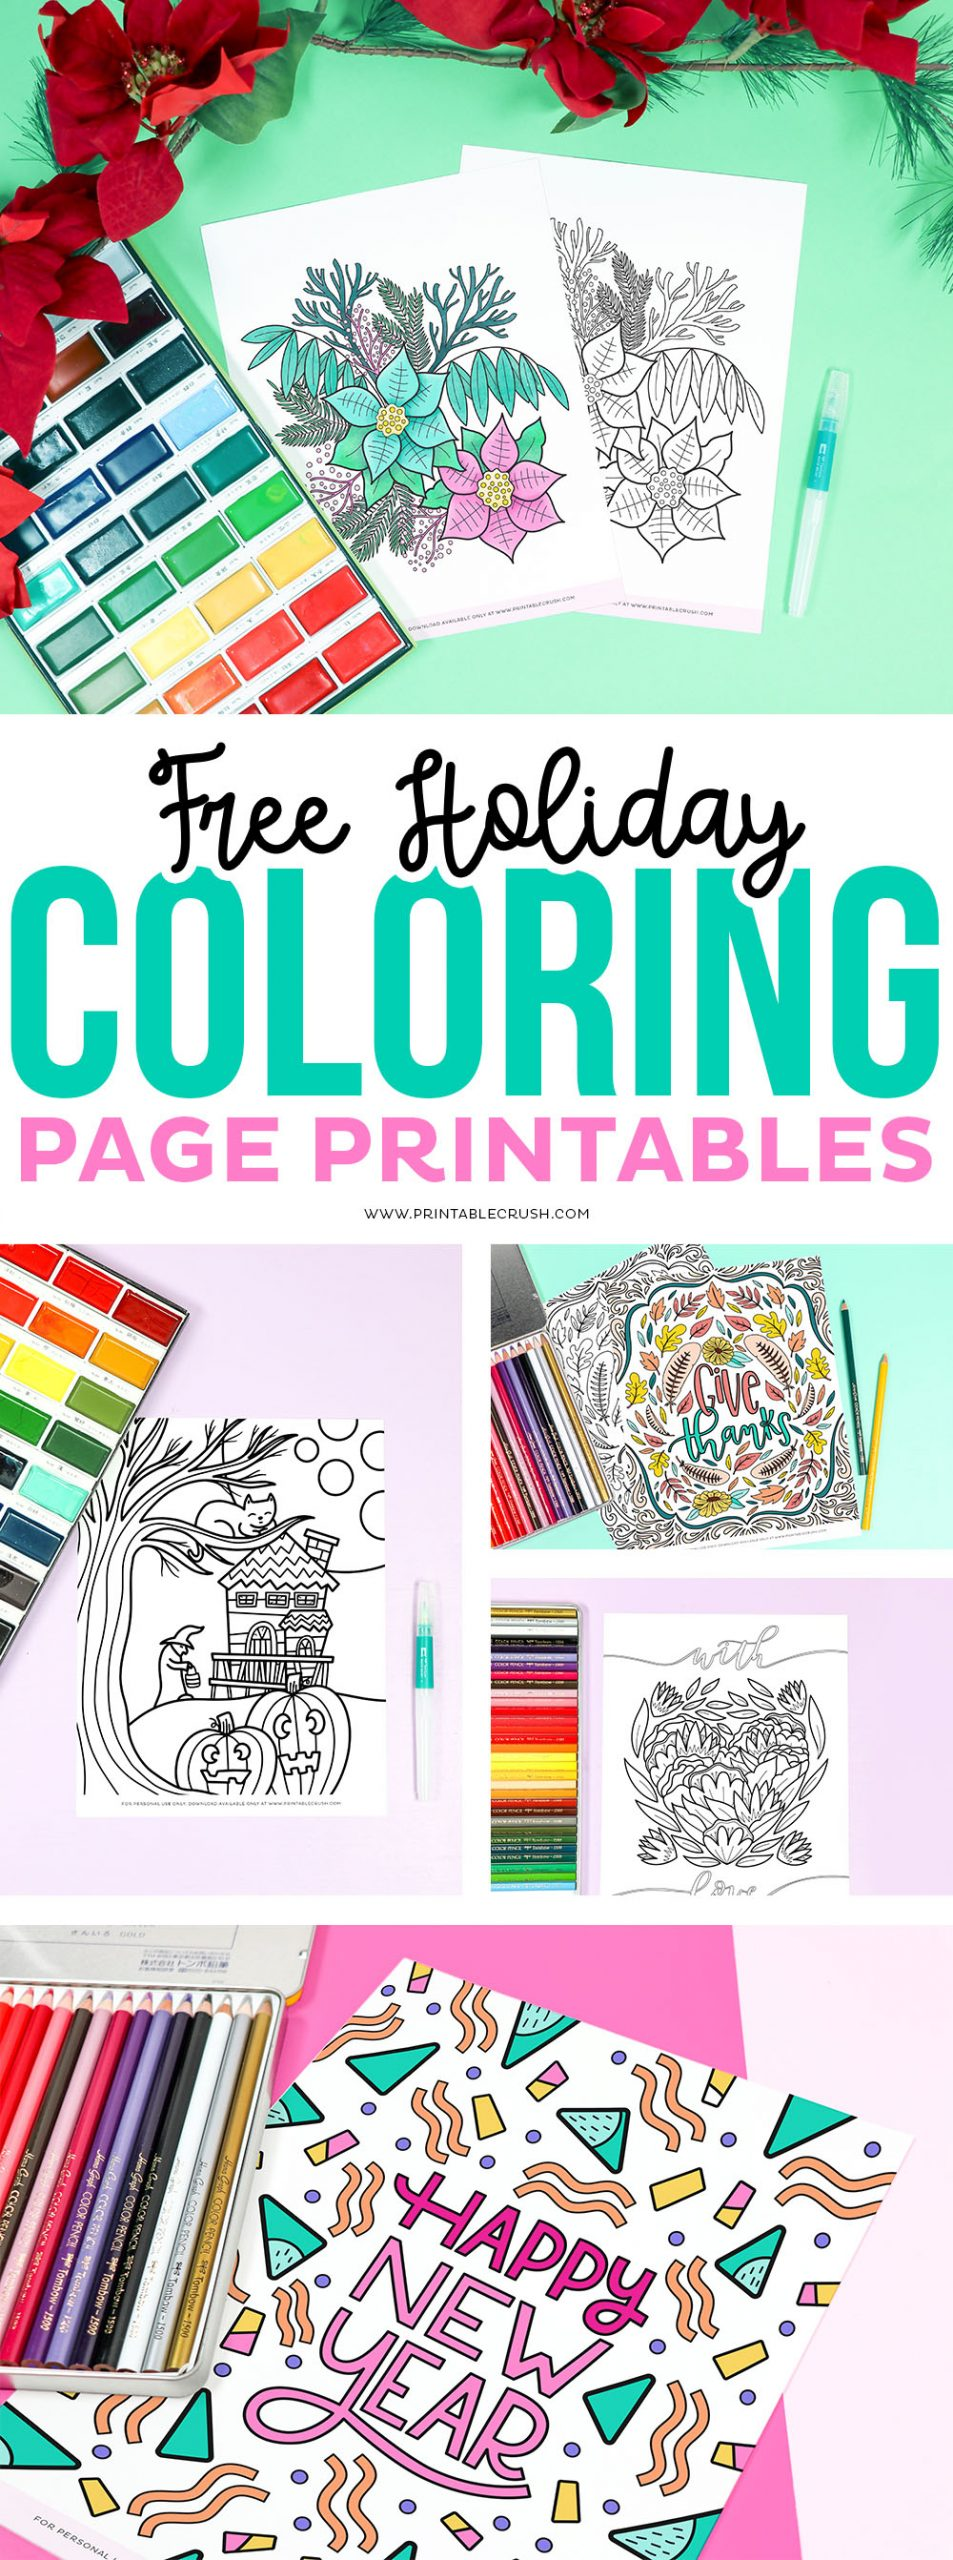 Free Holiday Coloring Page - Free Printable Holiday Coloring Pages - Printable Crush